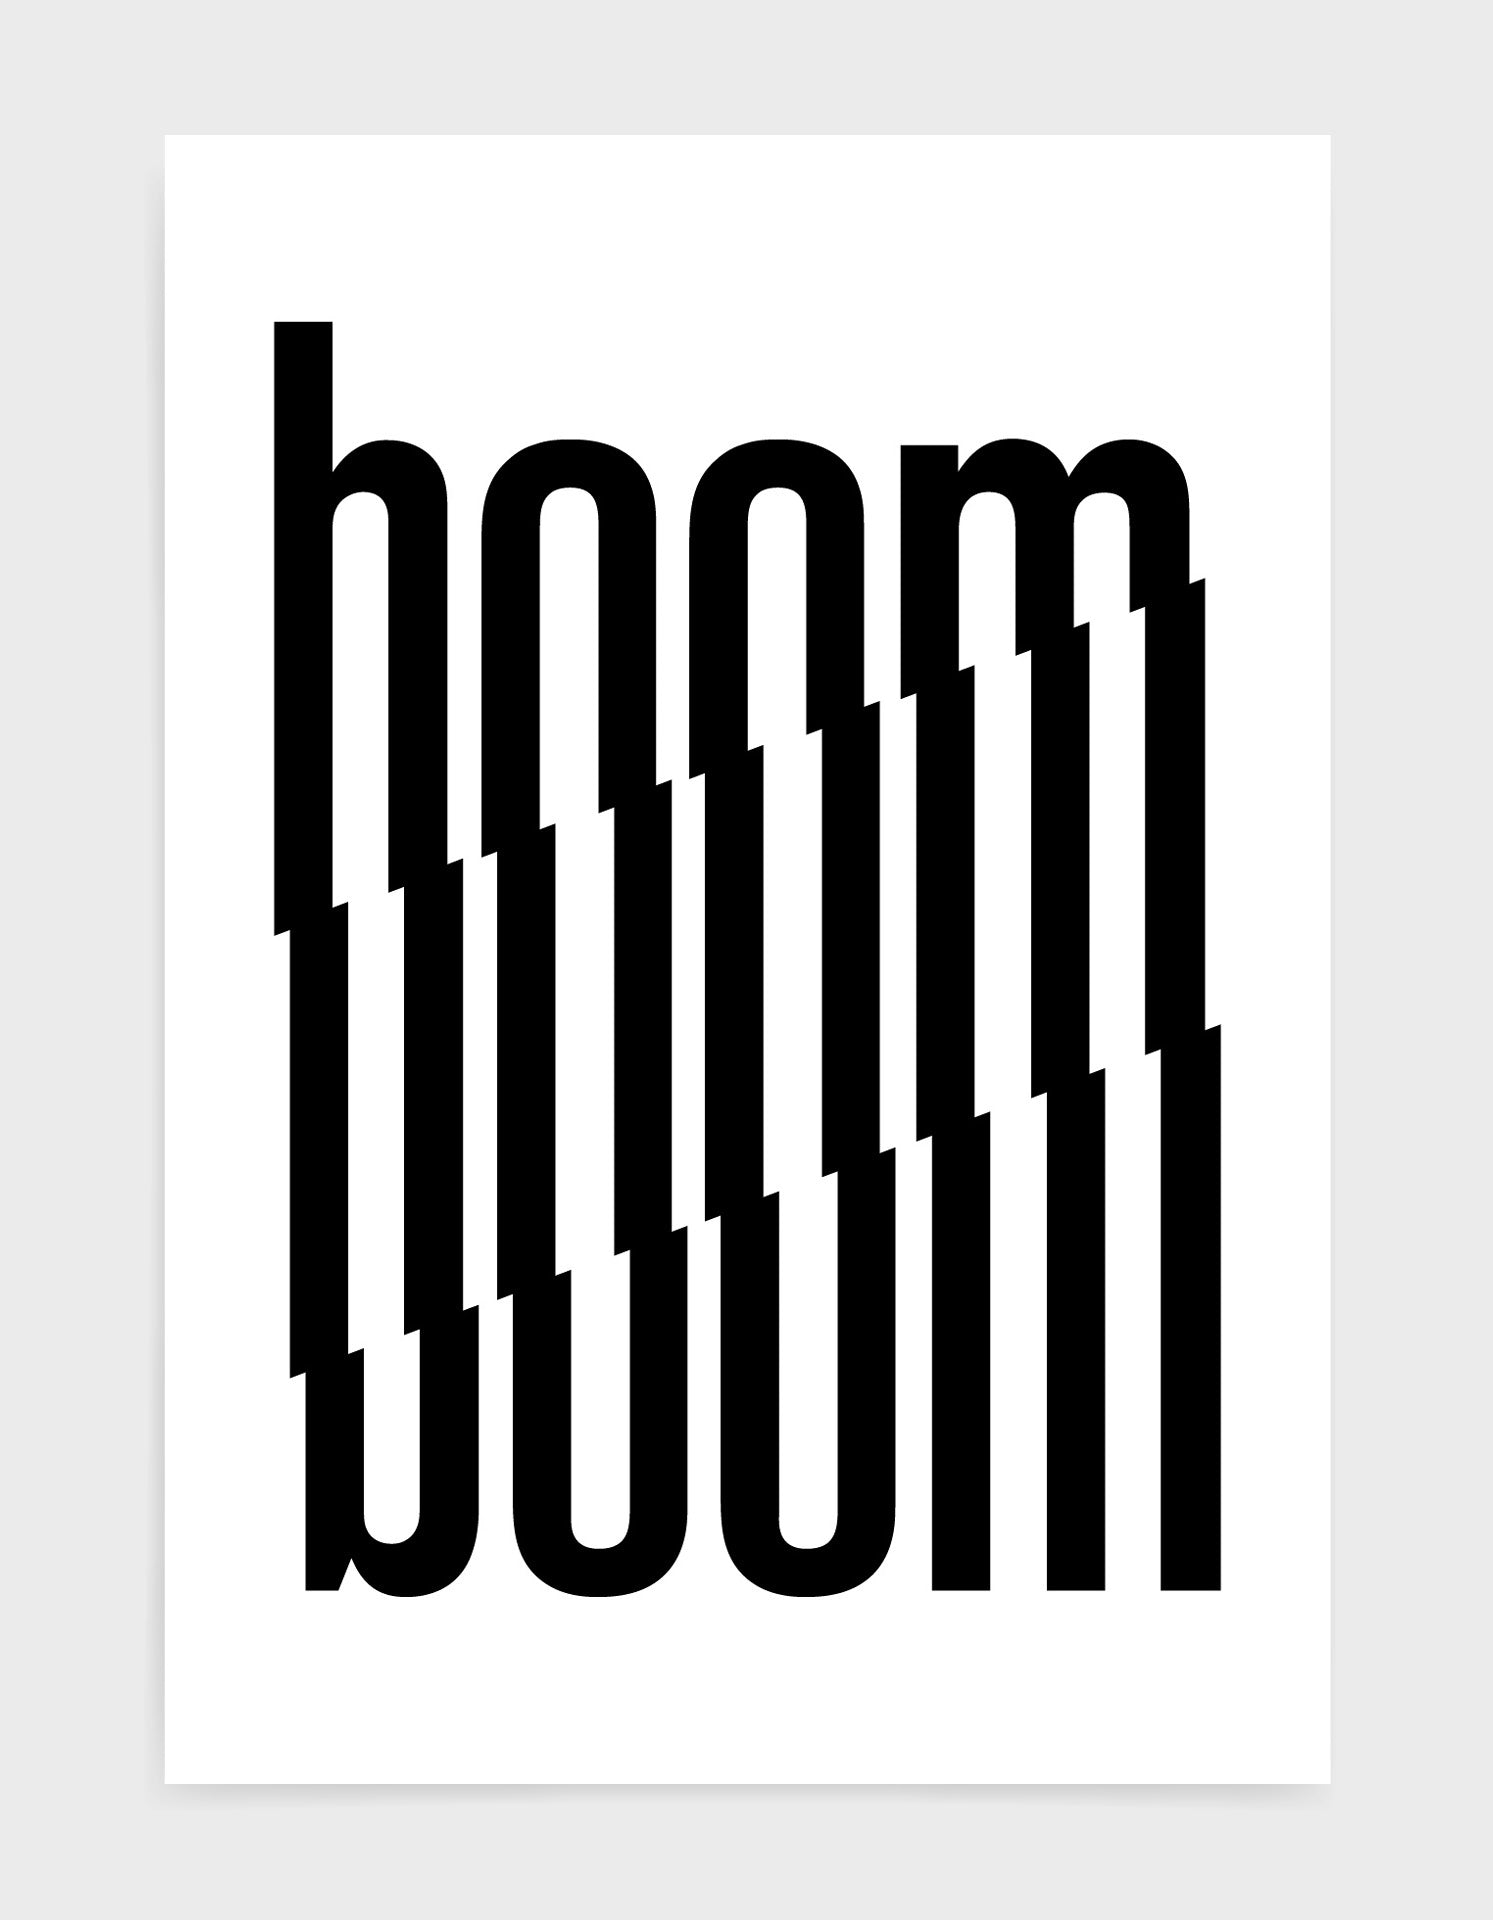 typography art print of the word boom in black text against a white background